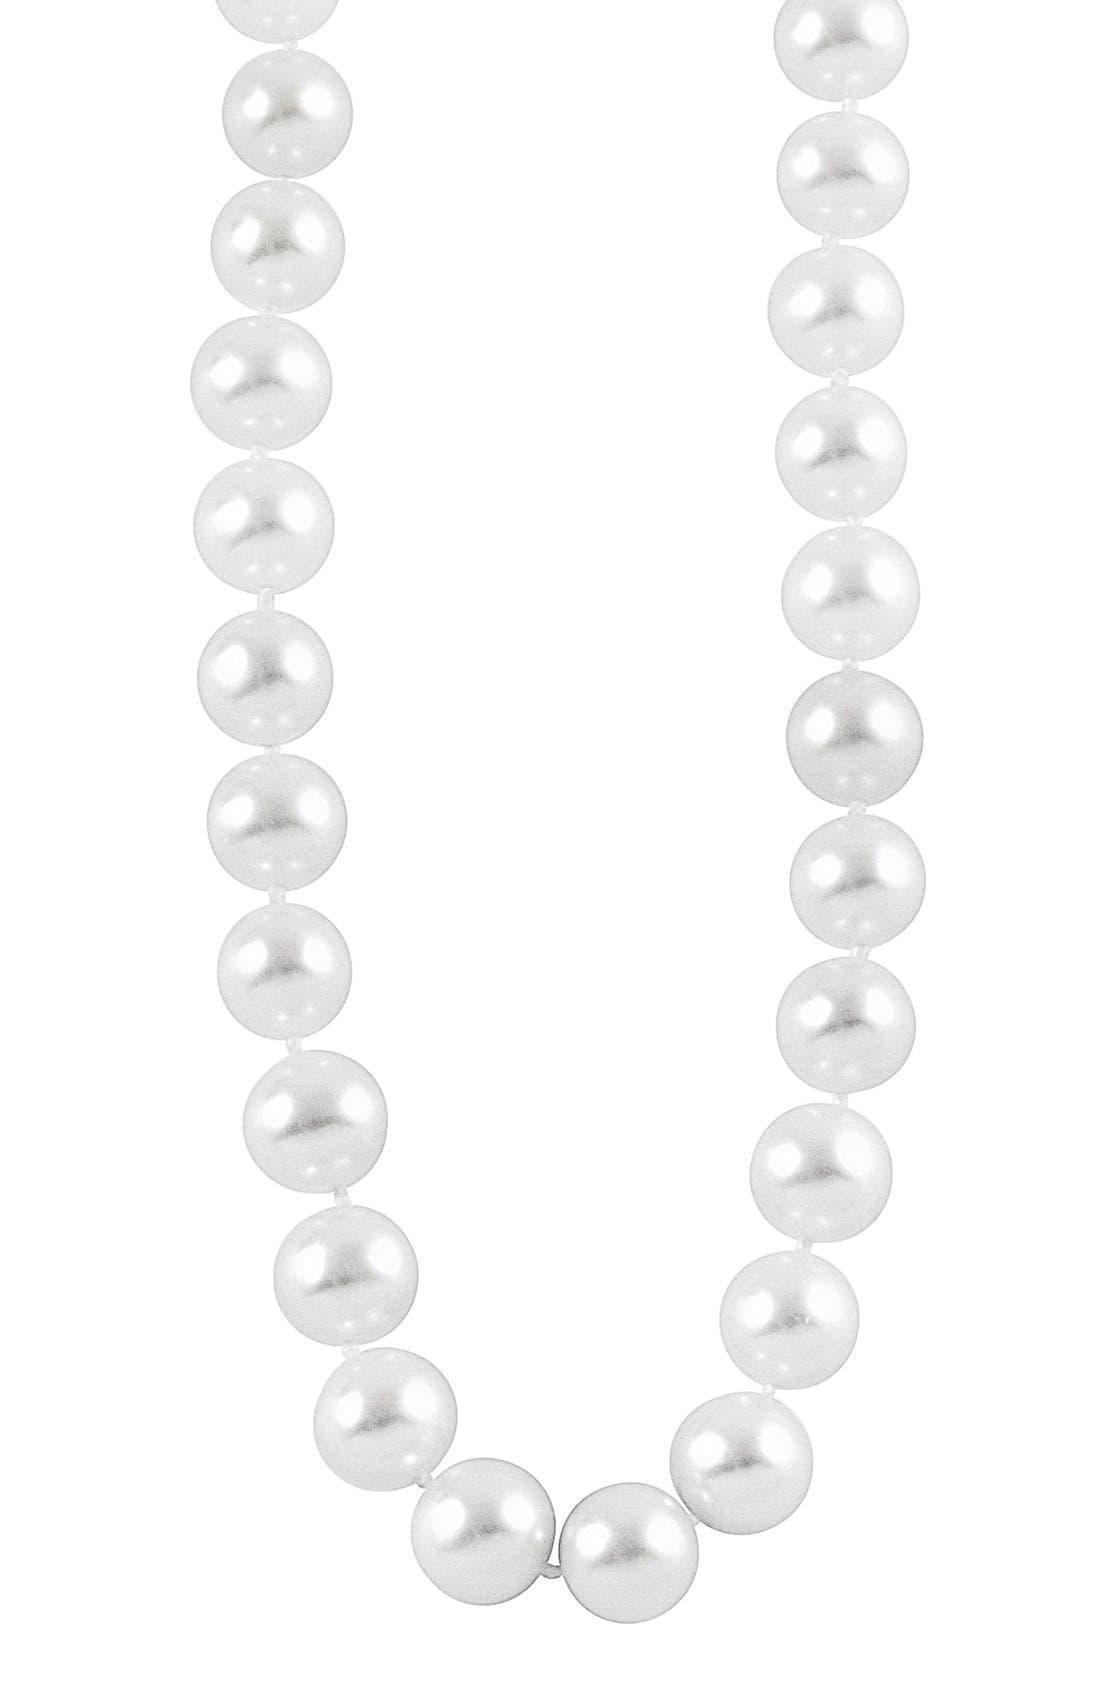 'Luna' 10mm Pearl Necklace,                             Alternate thumbnail 3, color,                             Silver/ Pearl